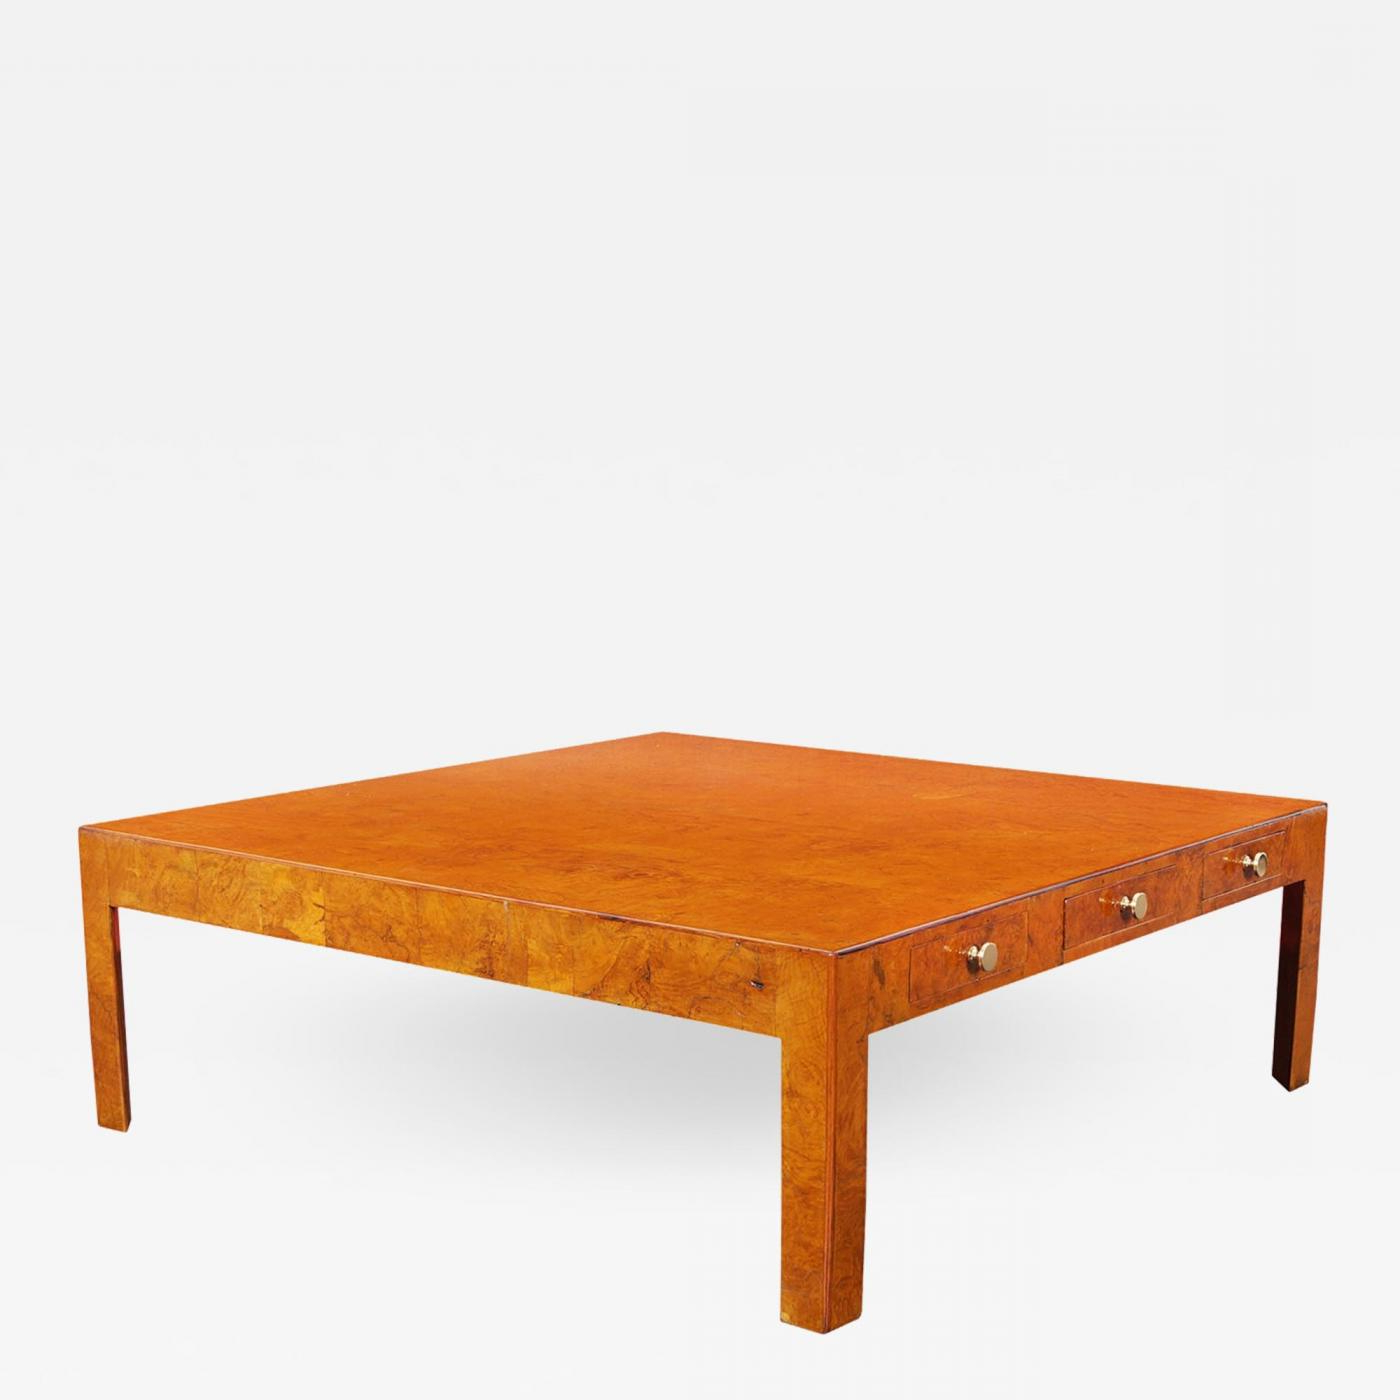 Cannell & Chaffin – Vintage Italian Burl Wood Coffee Table Pertaining To 2019 Vintage Wood Coffee Tables (View 3 of 20)